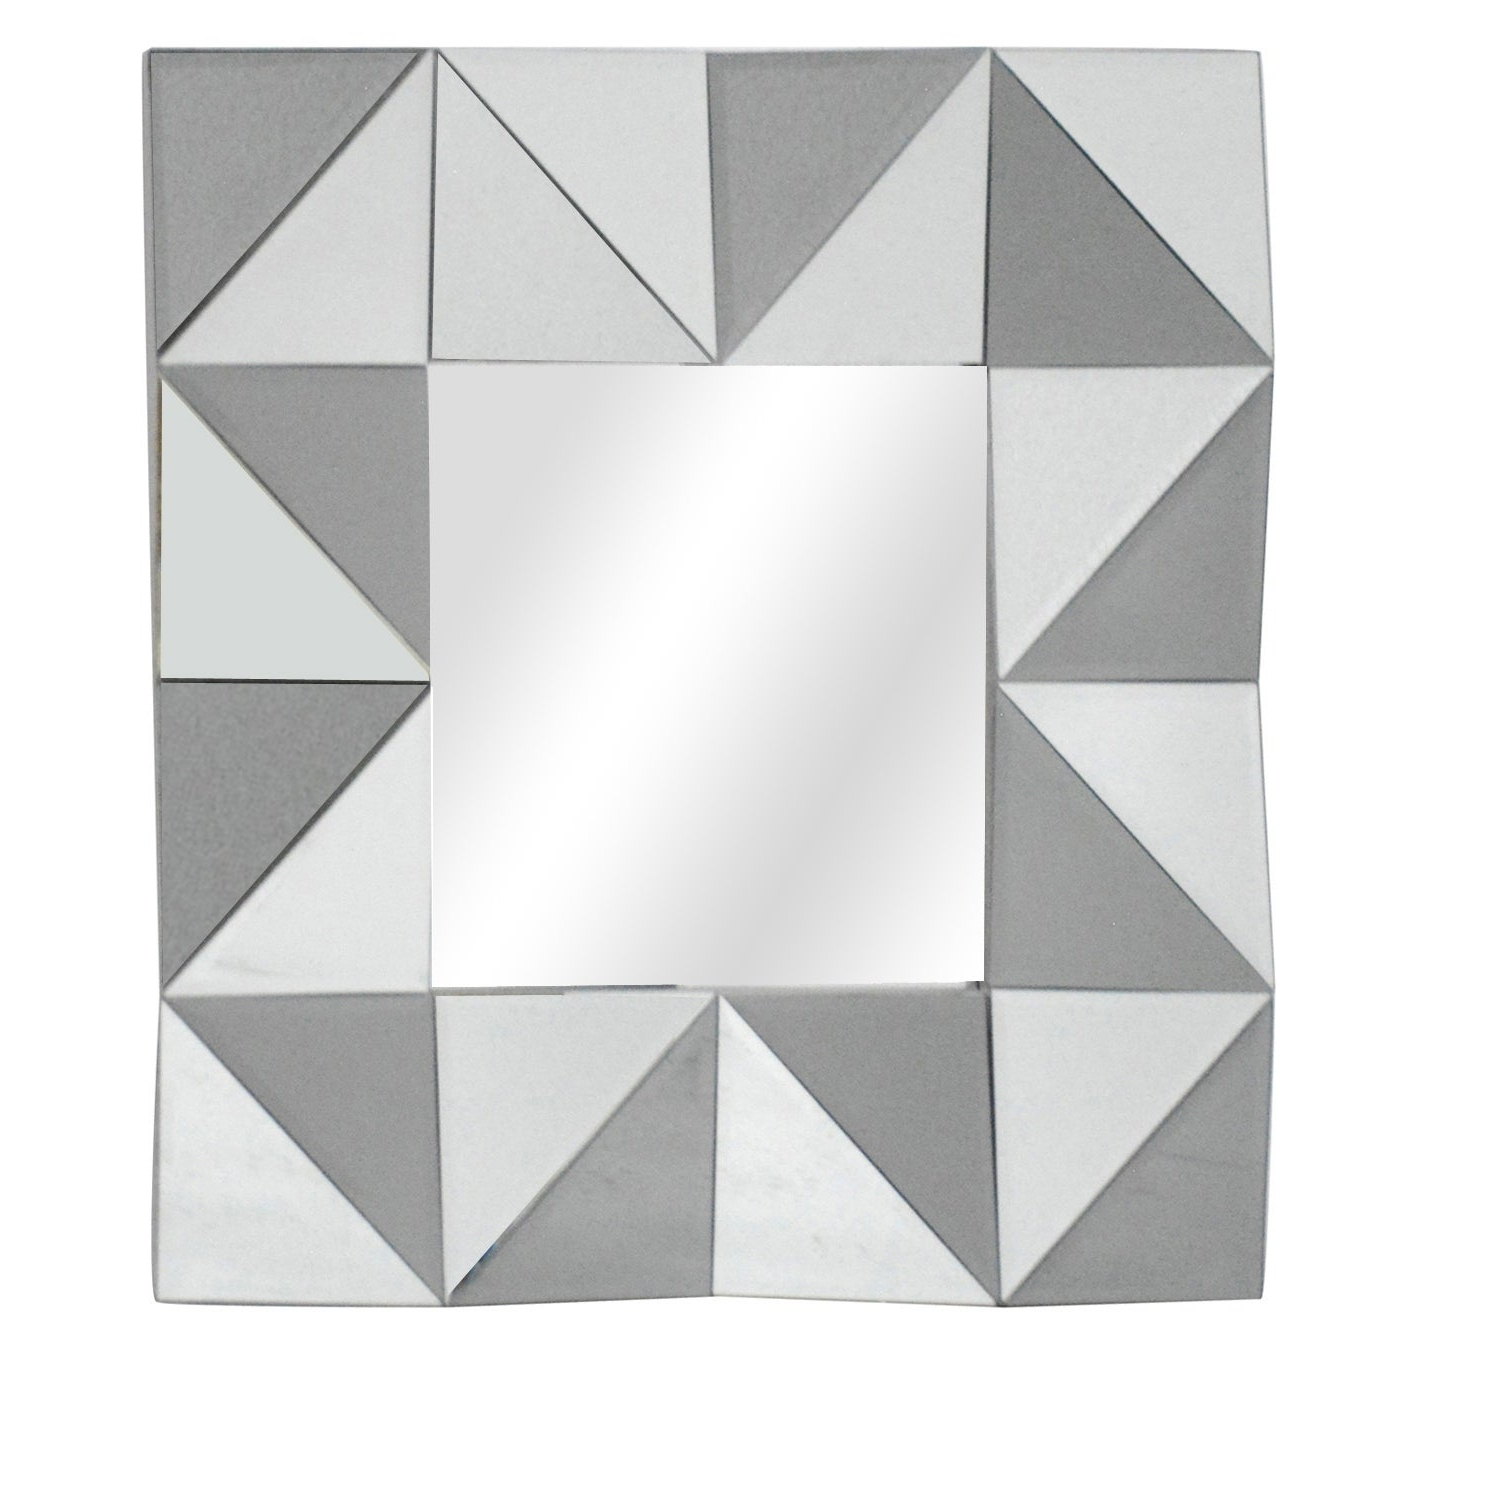 Squared Up Horizontal And Vertical Decorative Wall Mirror – A/n With Well Known Horizontal Decorative Wall Mirrors (View 7 of 20)